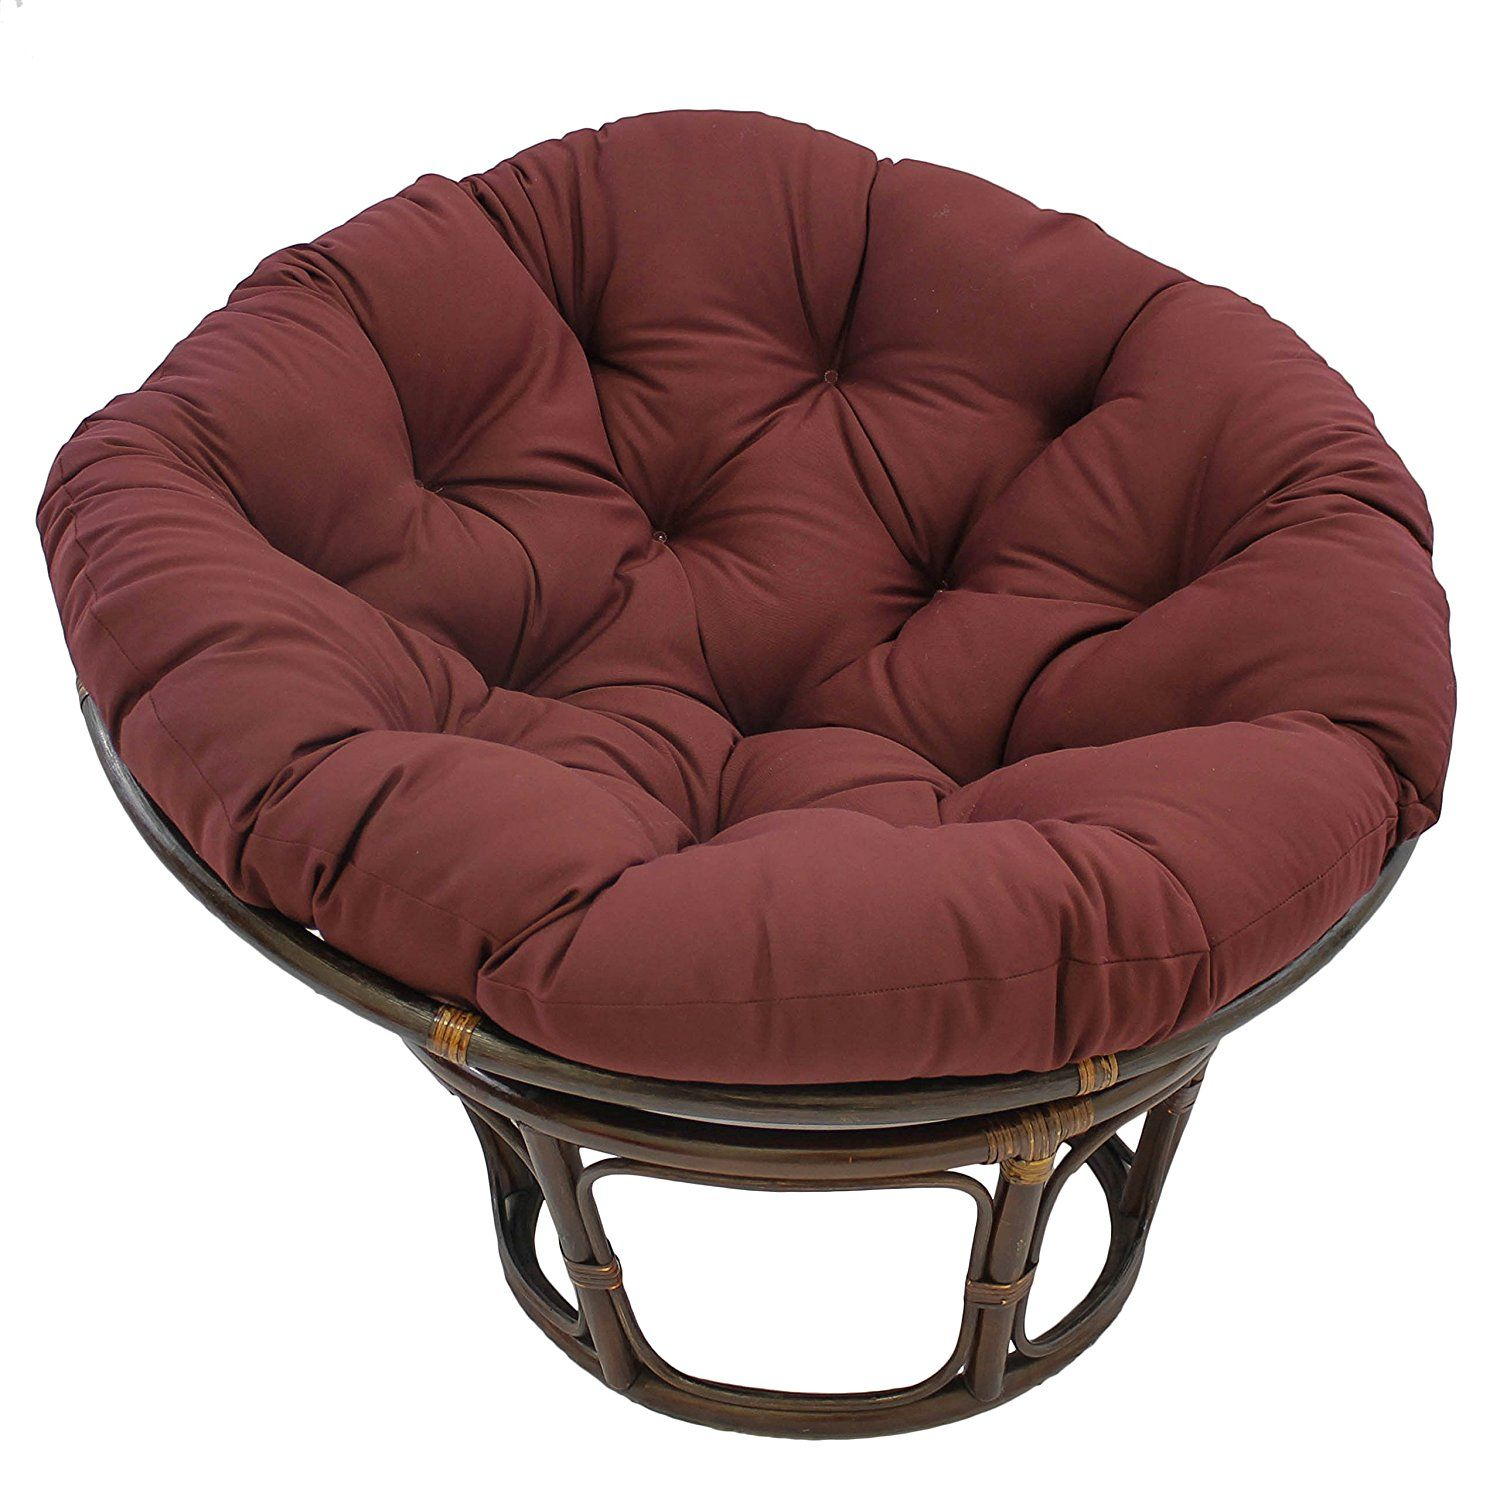 Big Chair Sessel Fuzzy Papasan Stuhl Pier One Papasan Stuhl Kissen Metallrahmen